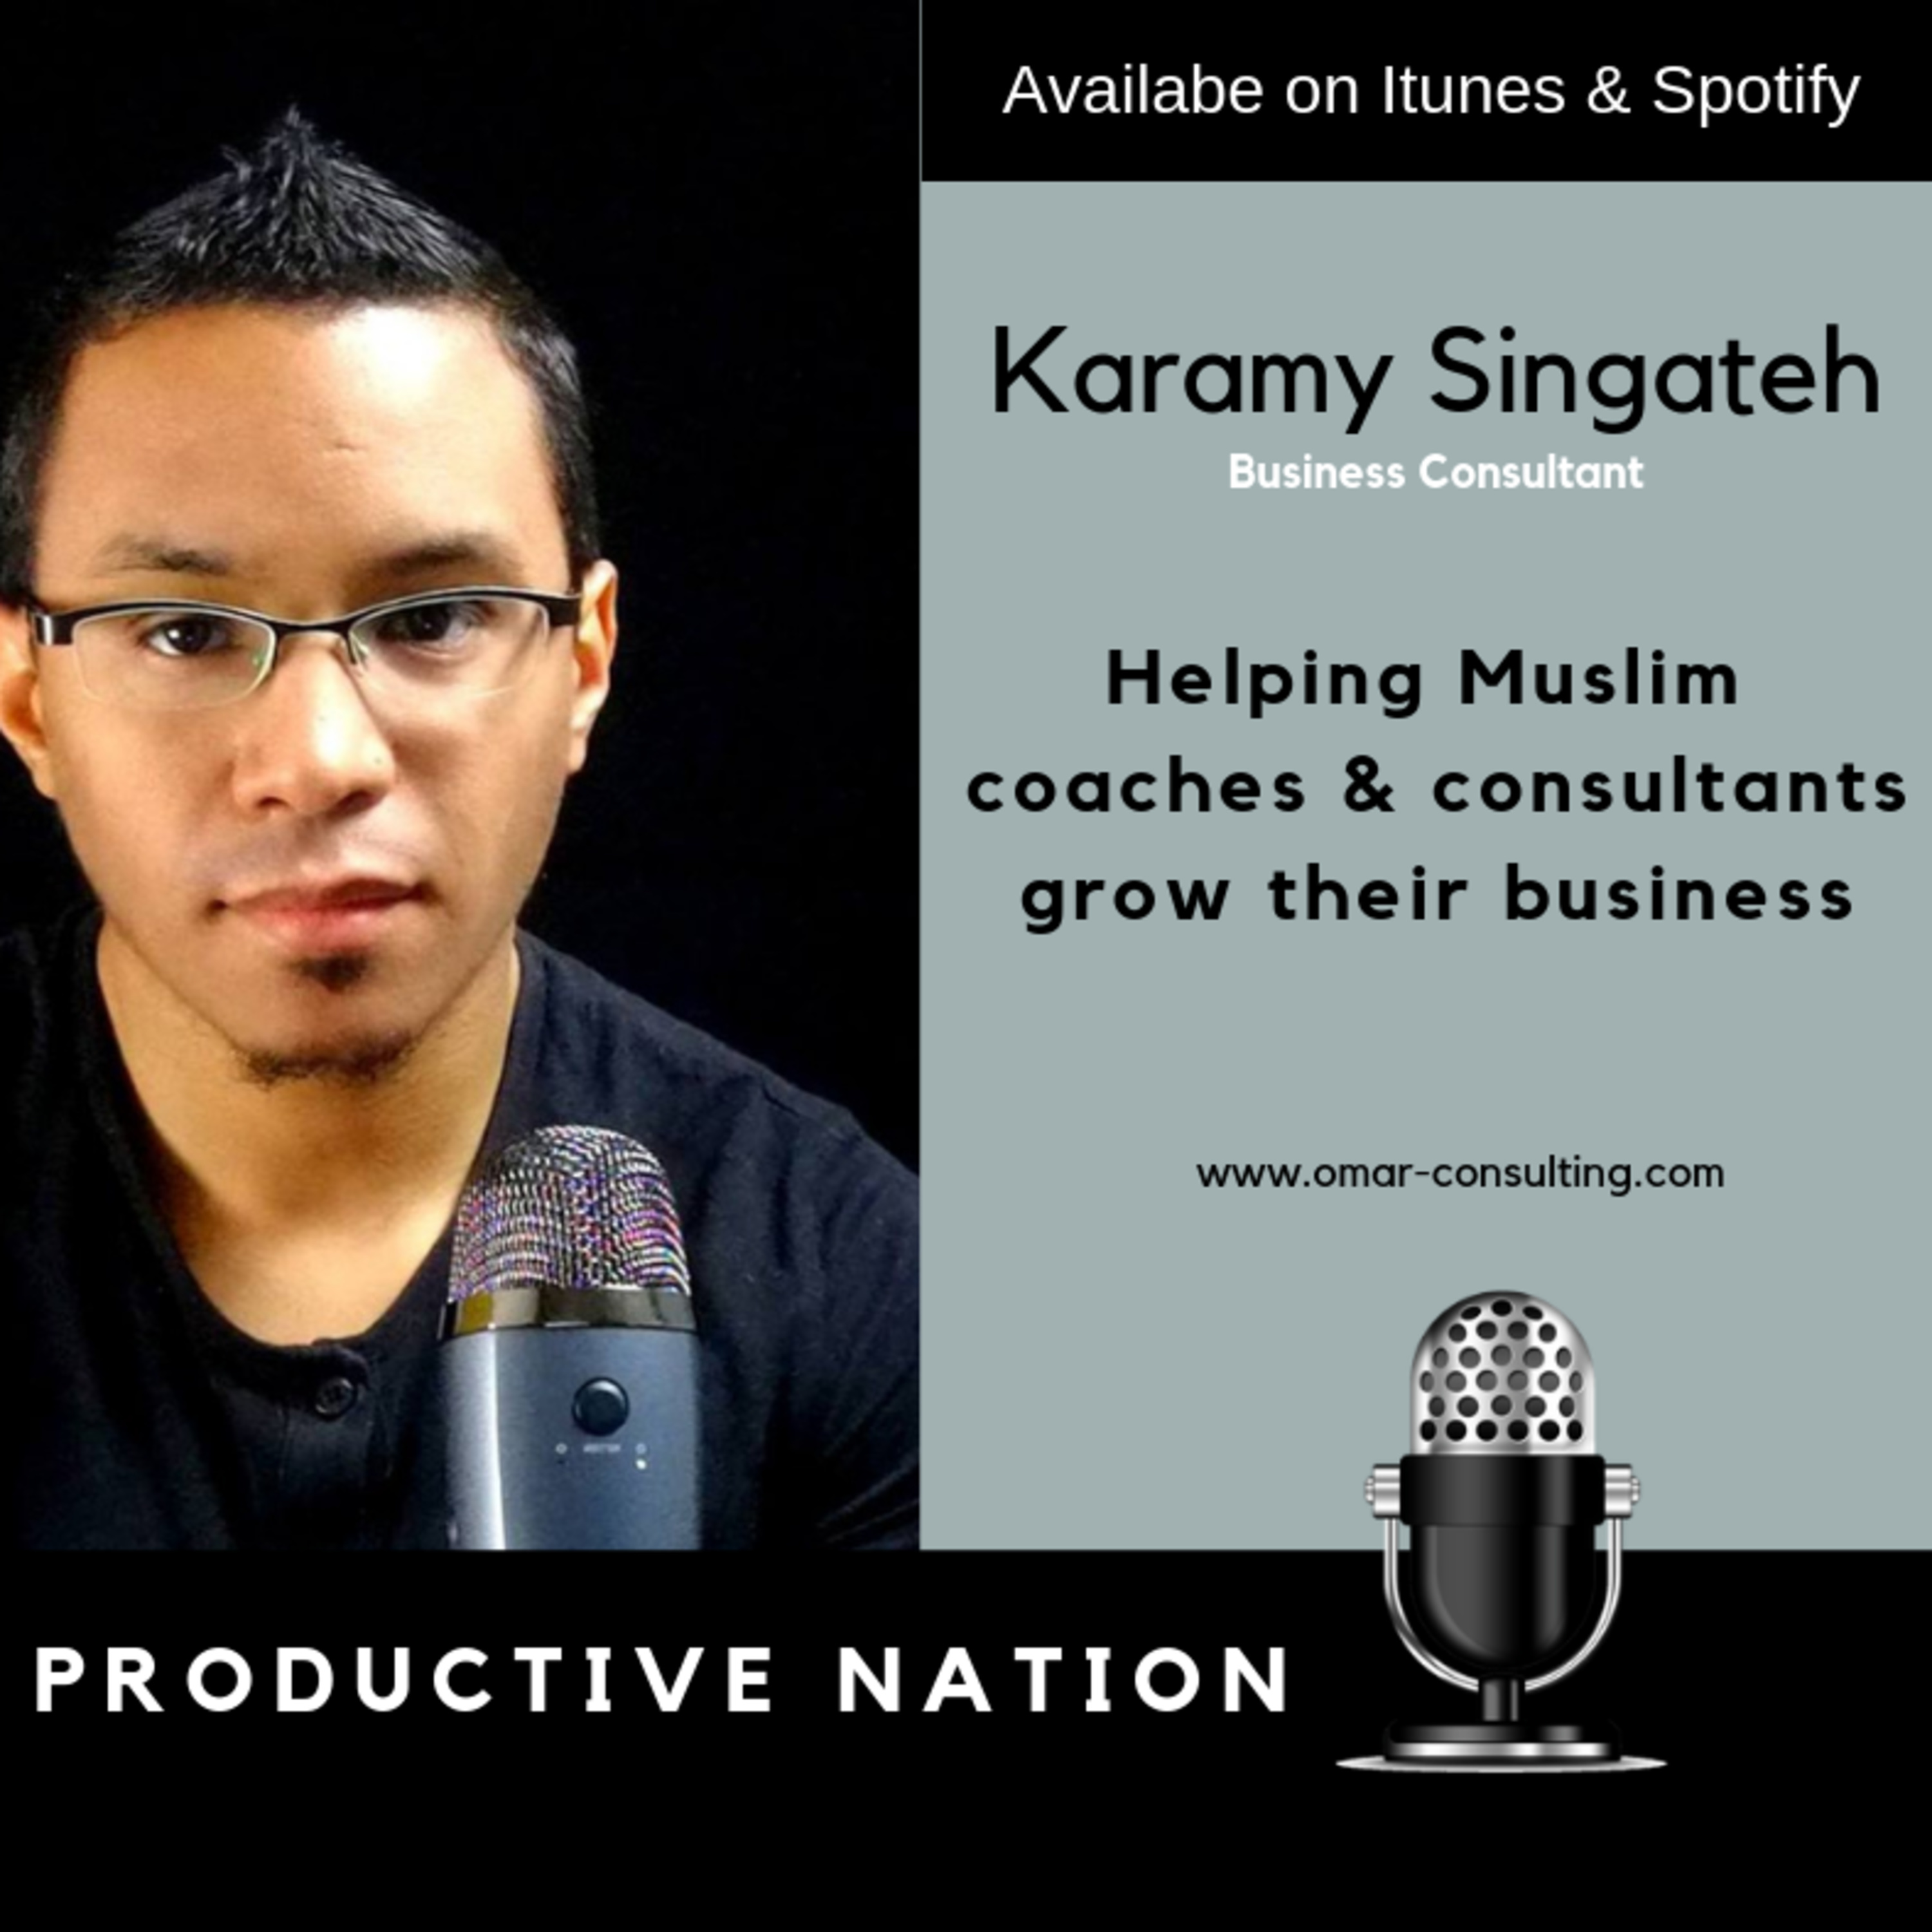 Helping Muslim coaches & consultants grow their business - Karamy Singateh